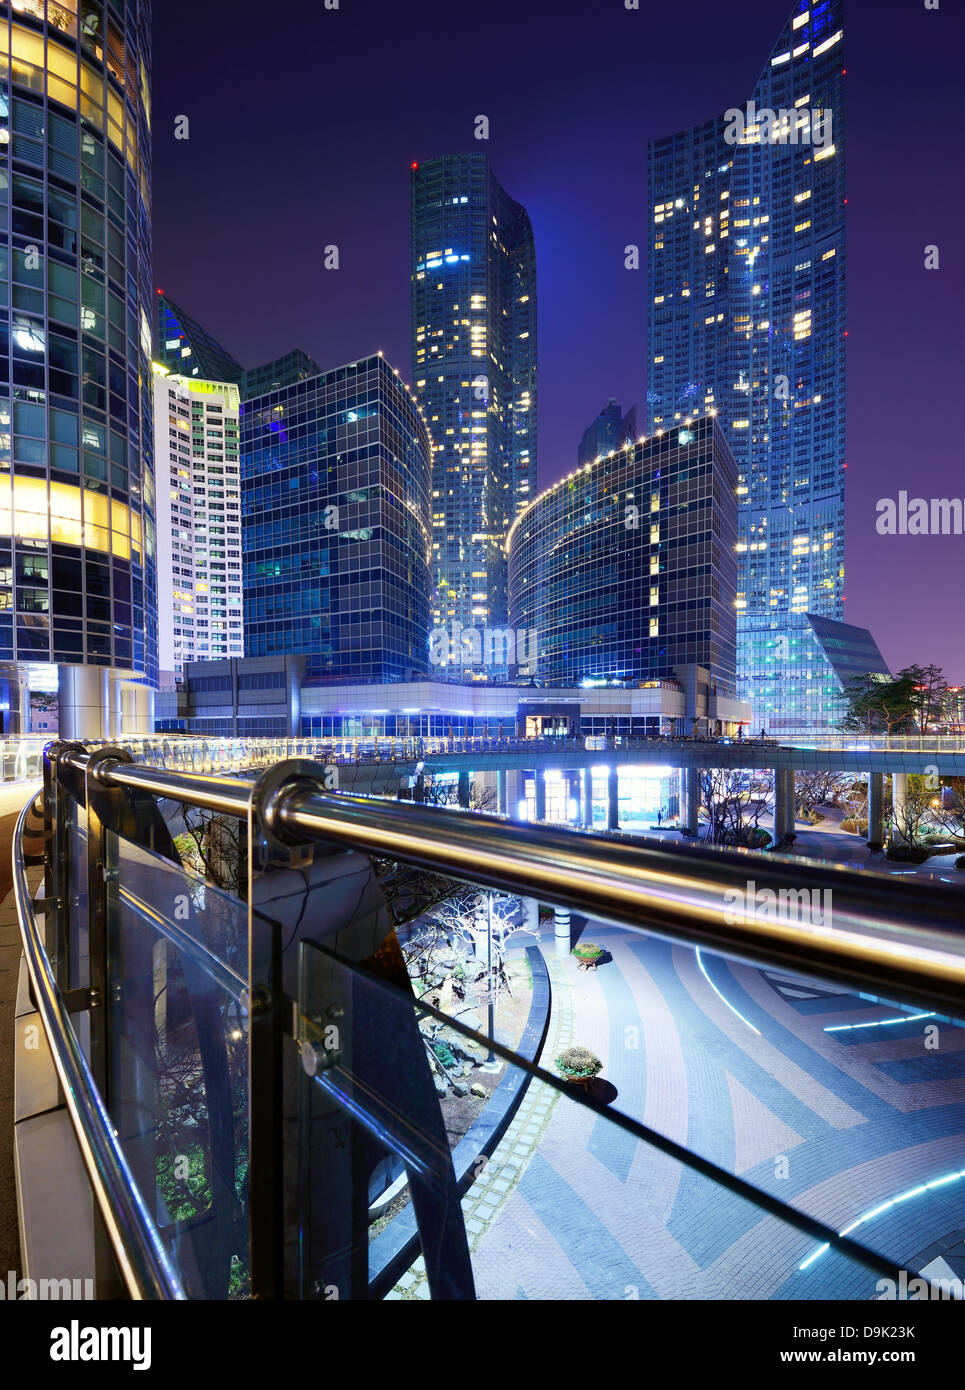 Cityscape of luxury high rises in the Haeundae district of Busan, South Korea at night. - Stock Image